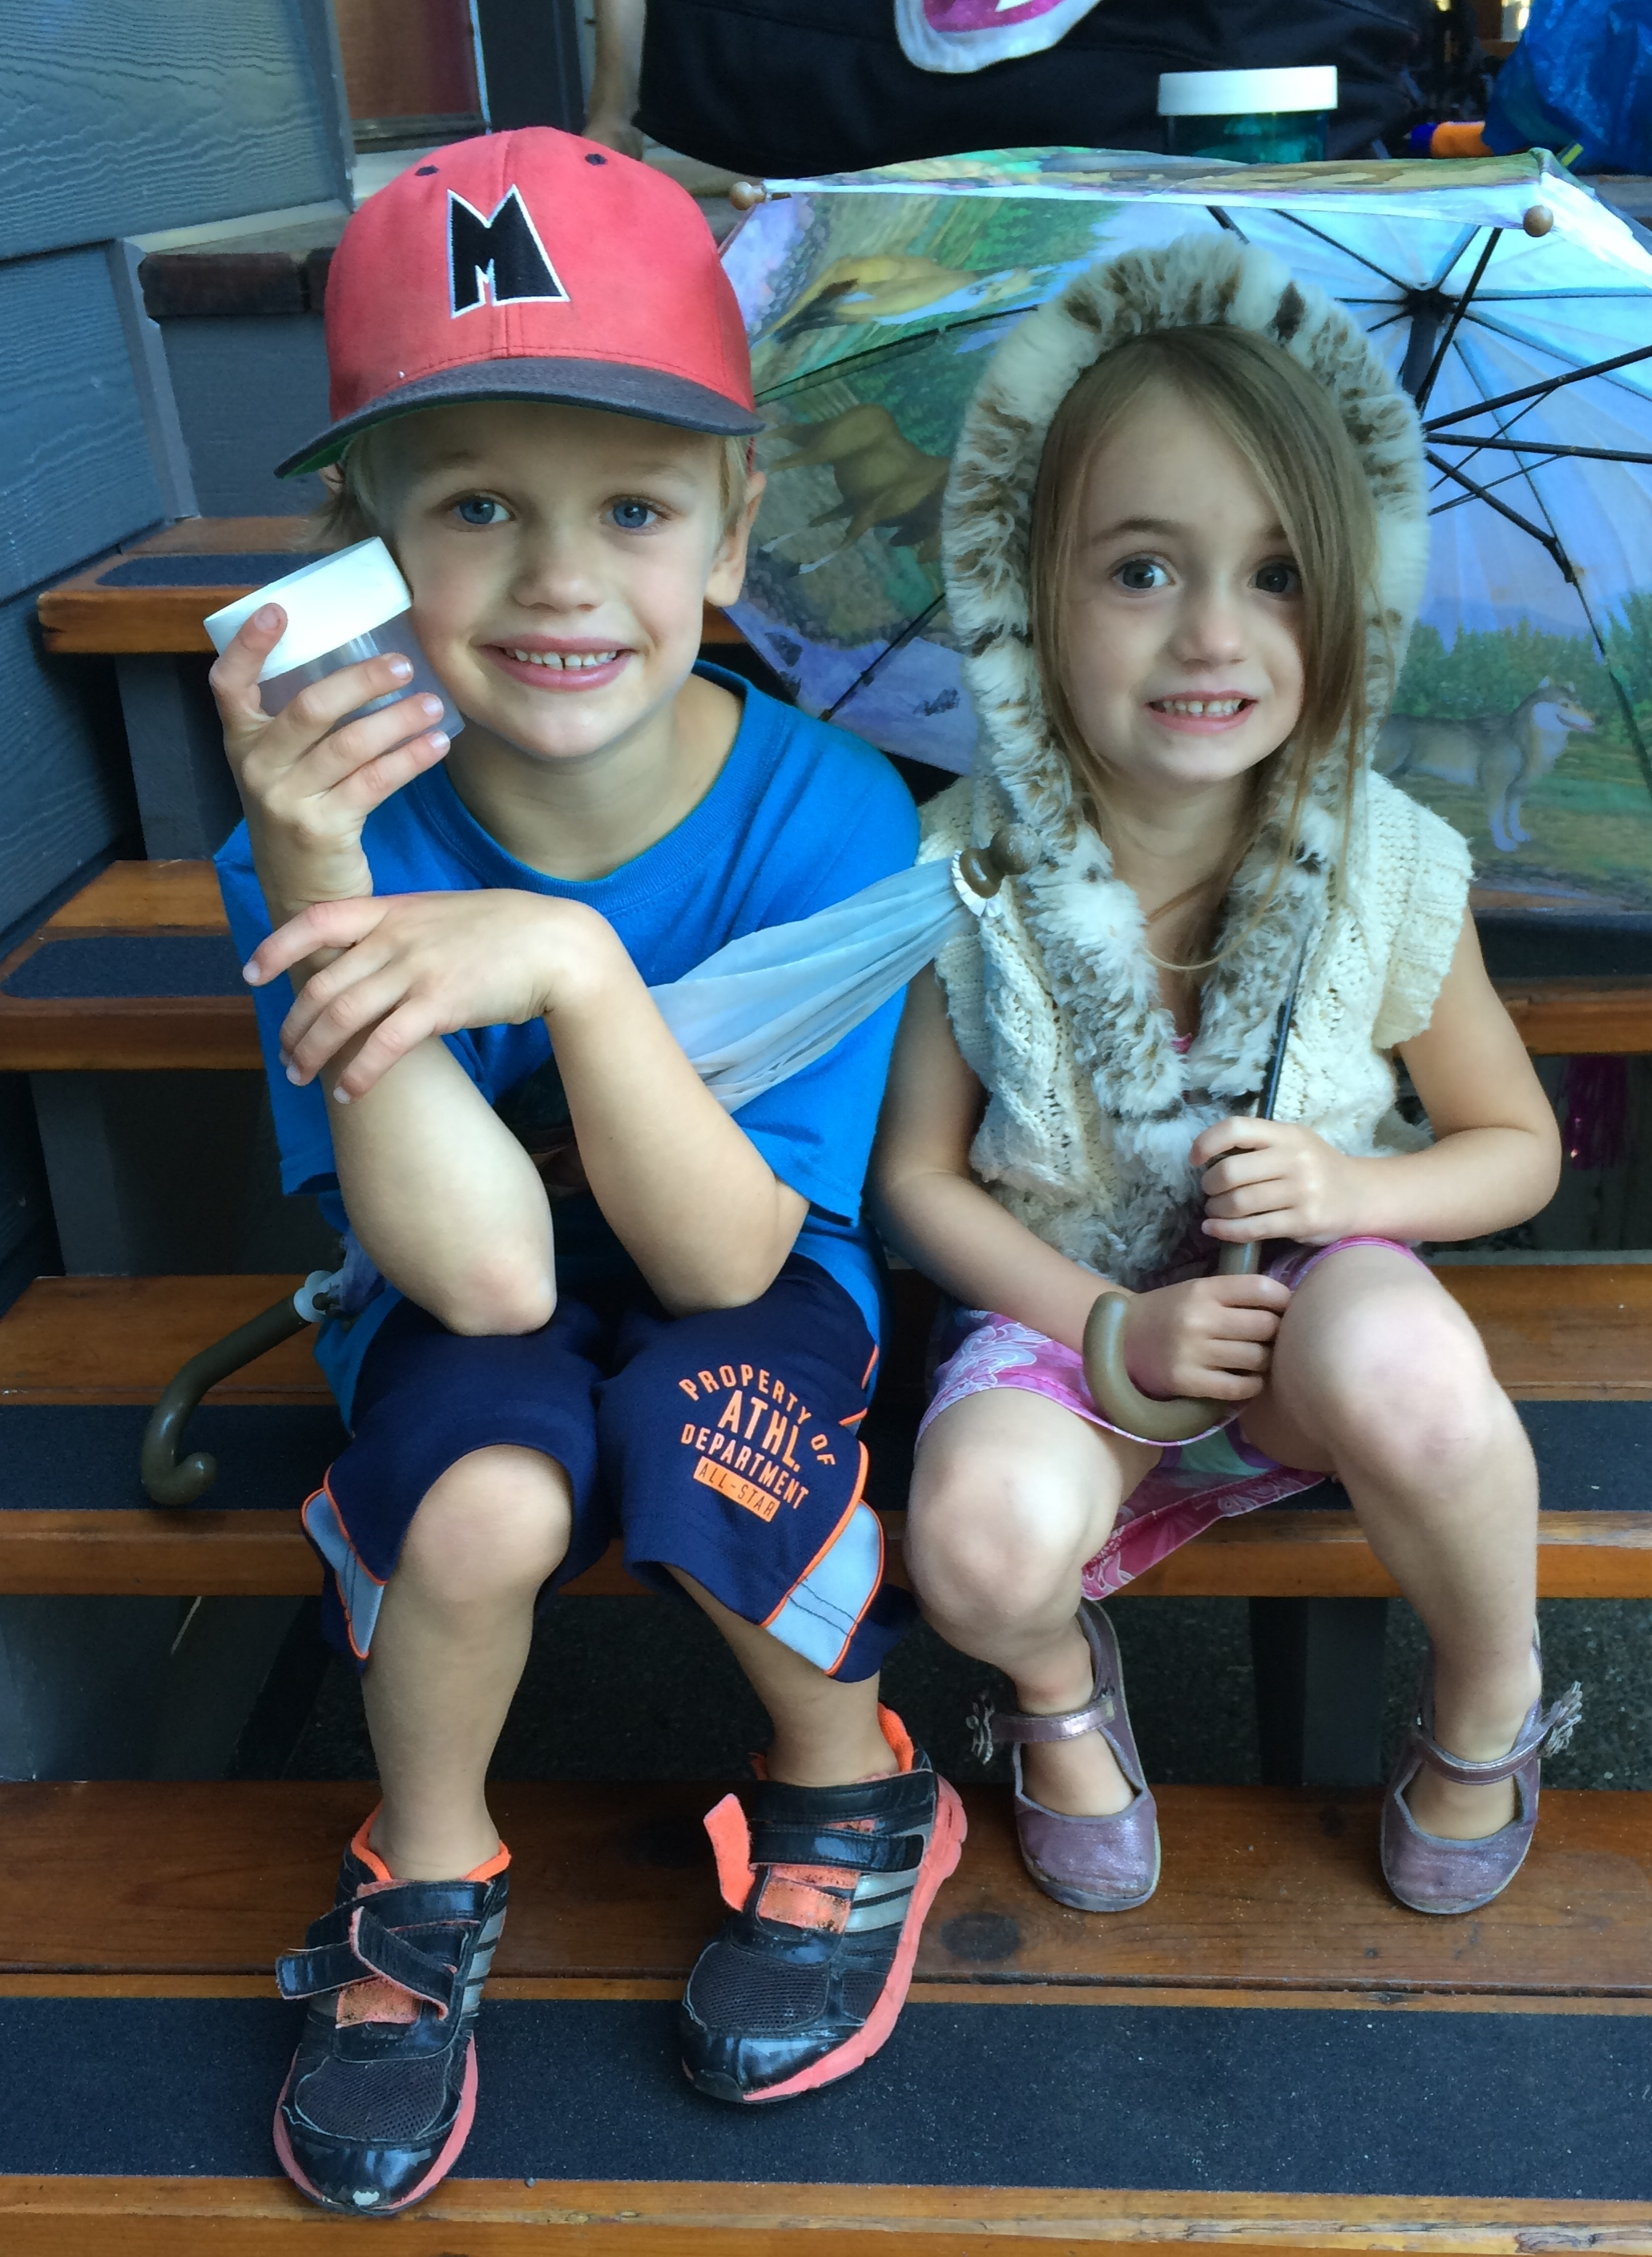 """At this year's AGM, the proud grandparents of Jasper and Claire Bullock presented the association with the """"Toonies for the Loonies"""" the kids had collected from their birthday parties this summer, and wanted to donate to the BRLA to help protect the lake's loons."""